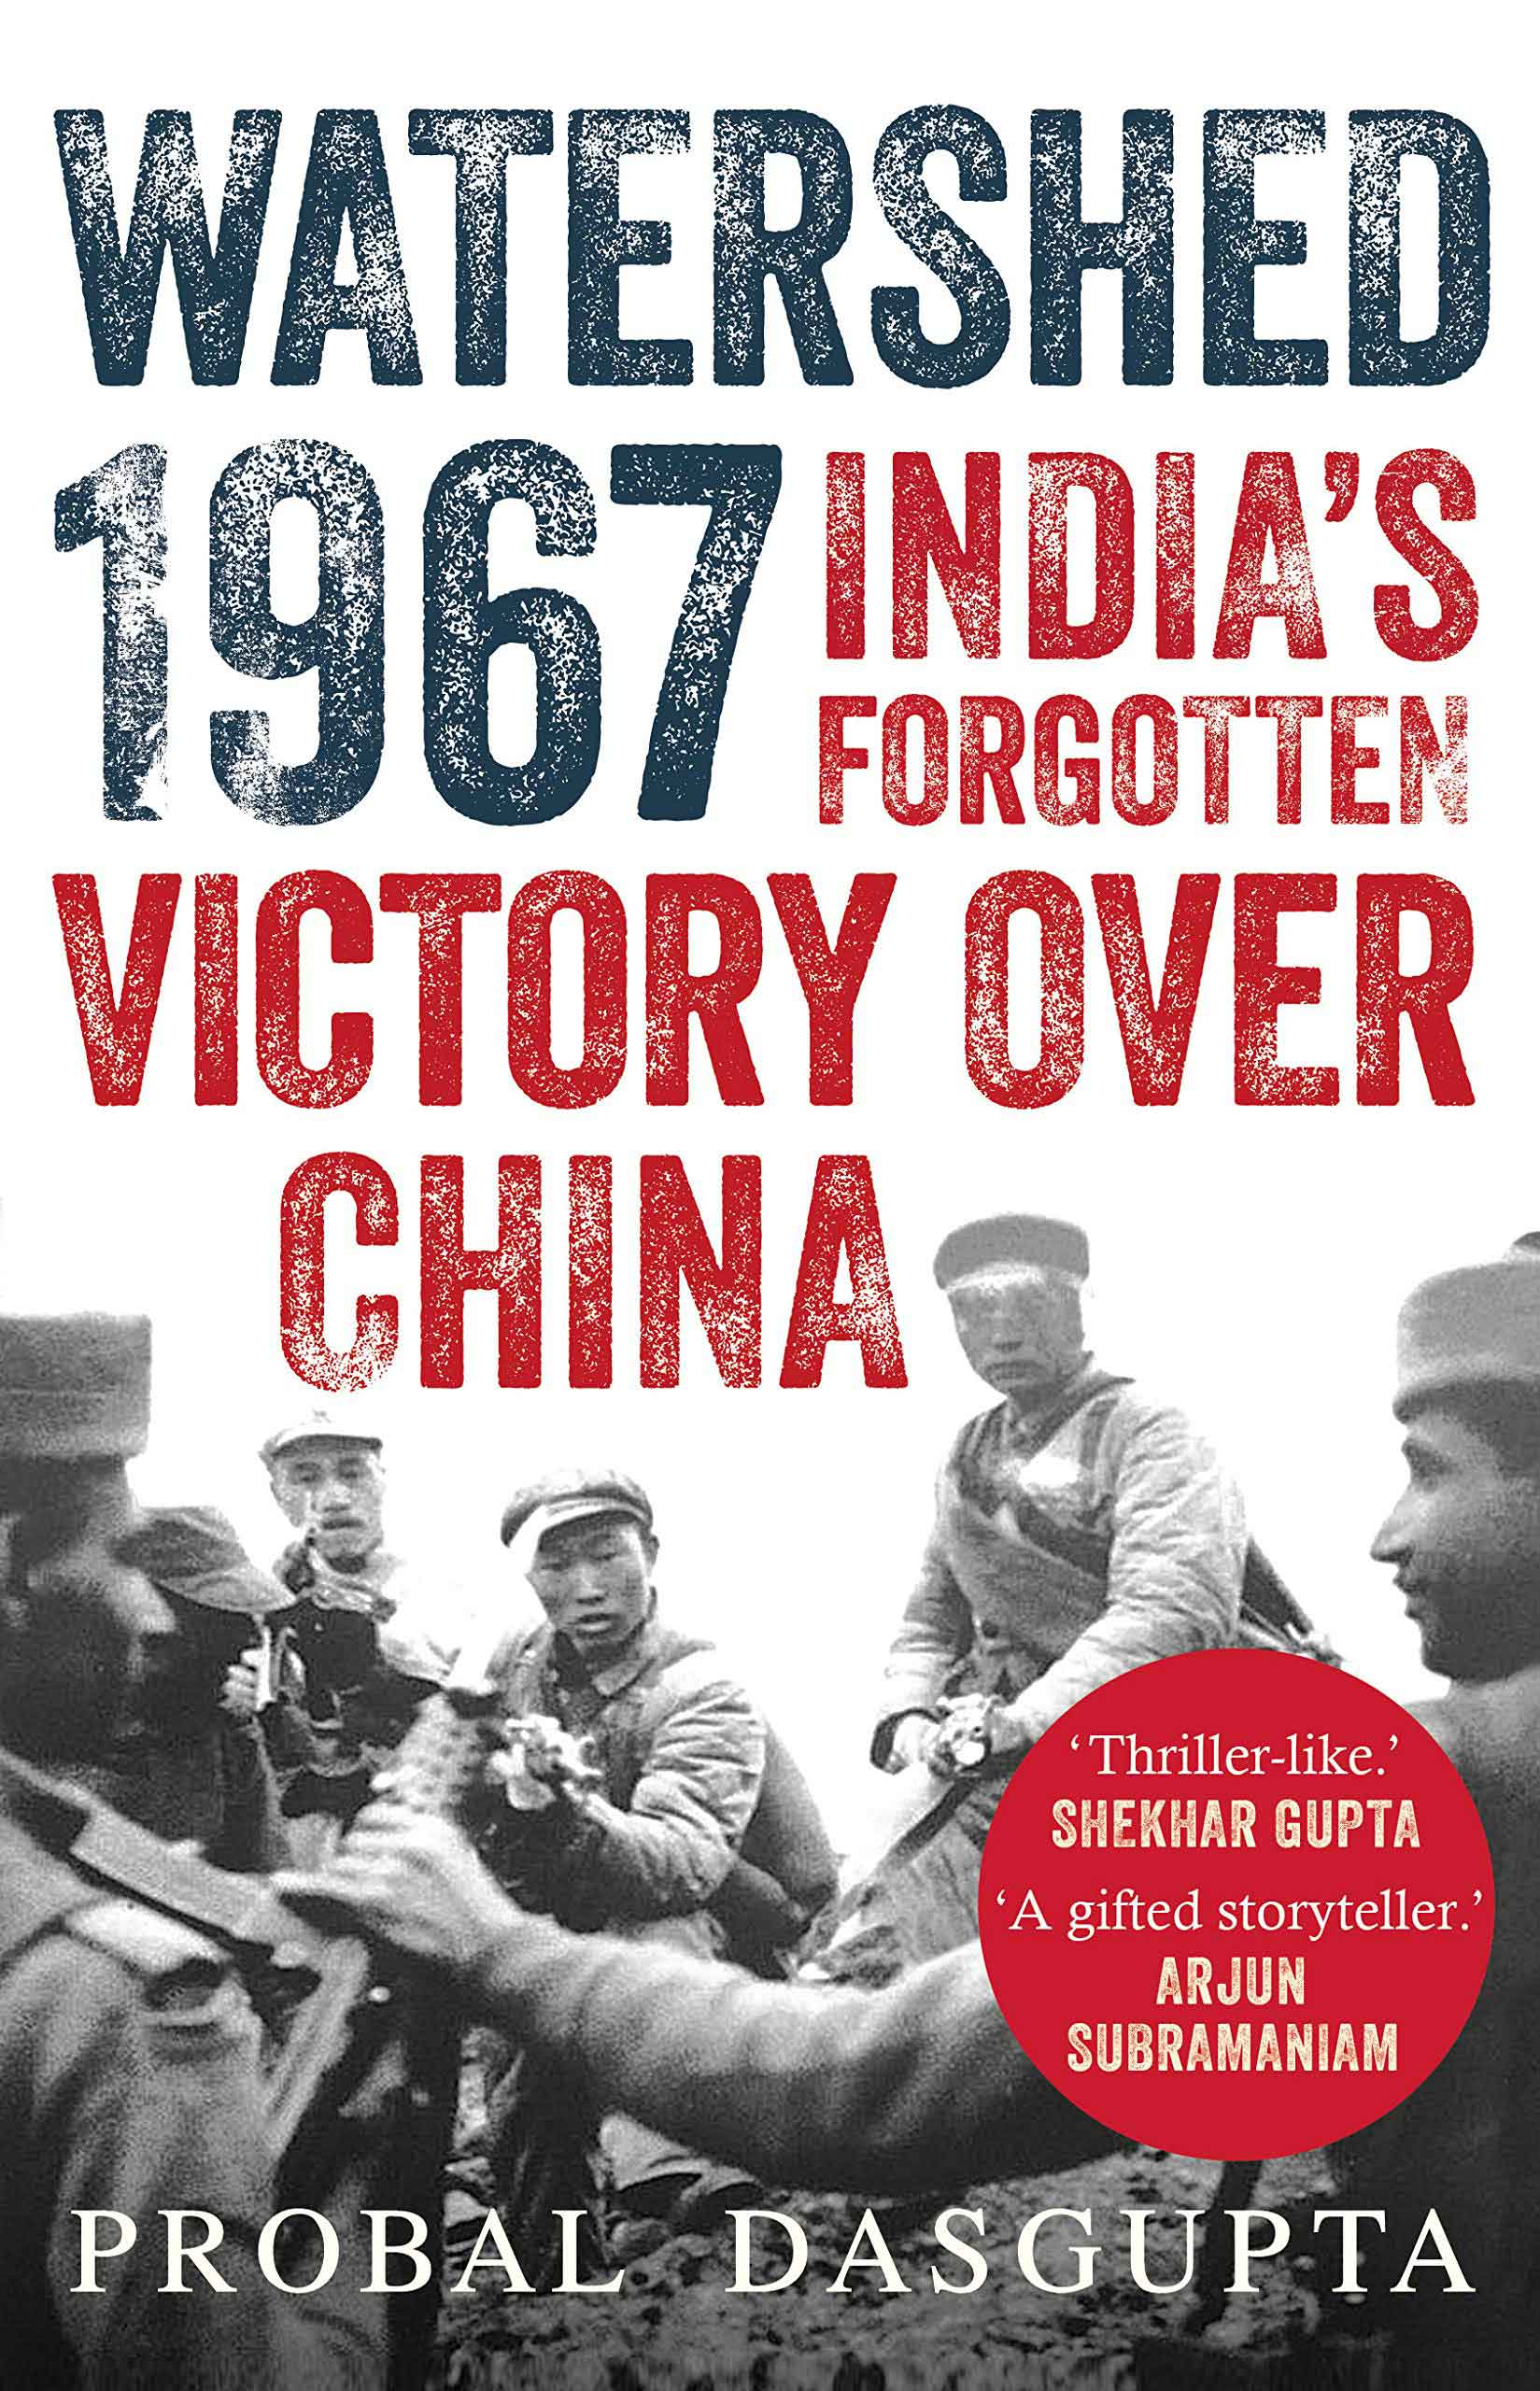 Watershed 1967: India's forgotten victory over China by Probal DasGupta, Juggernaut, Rs 599